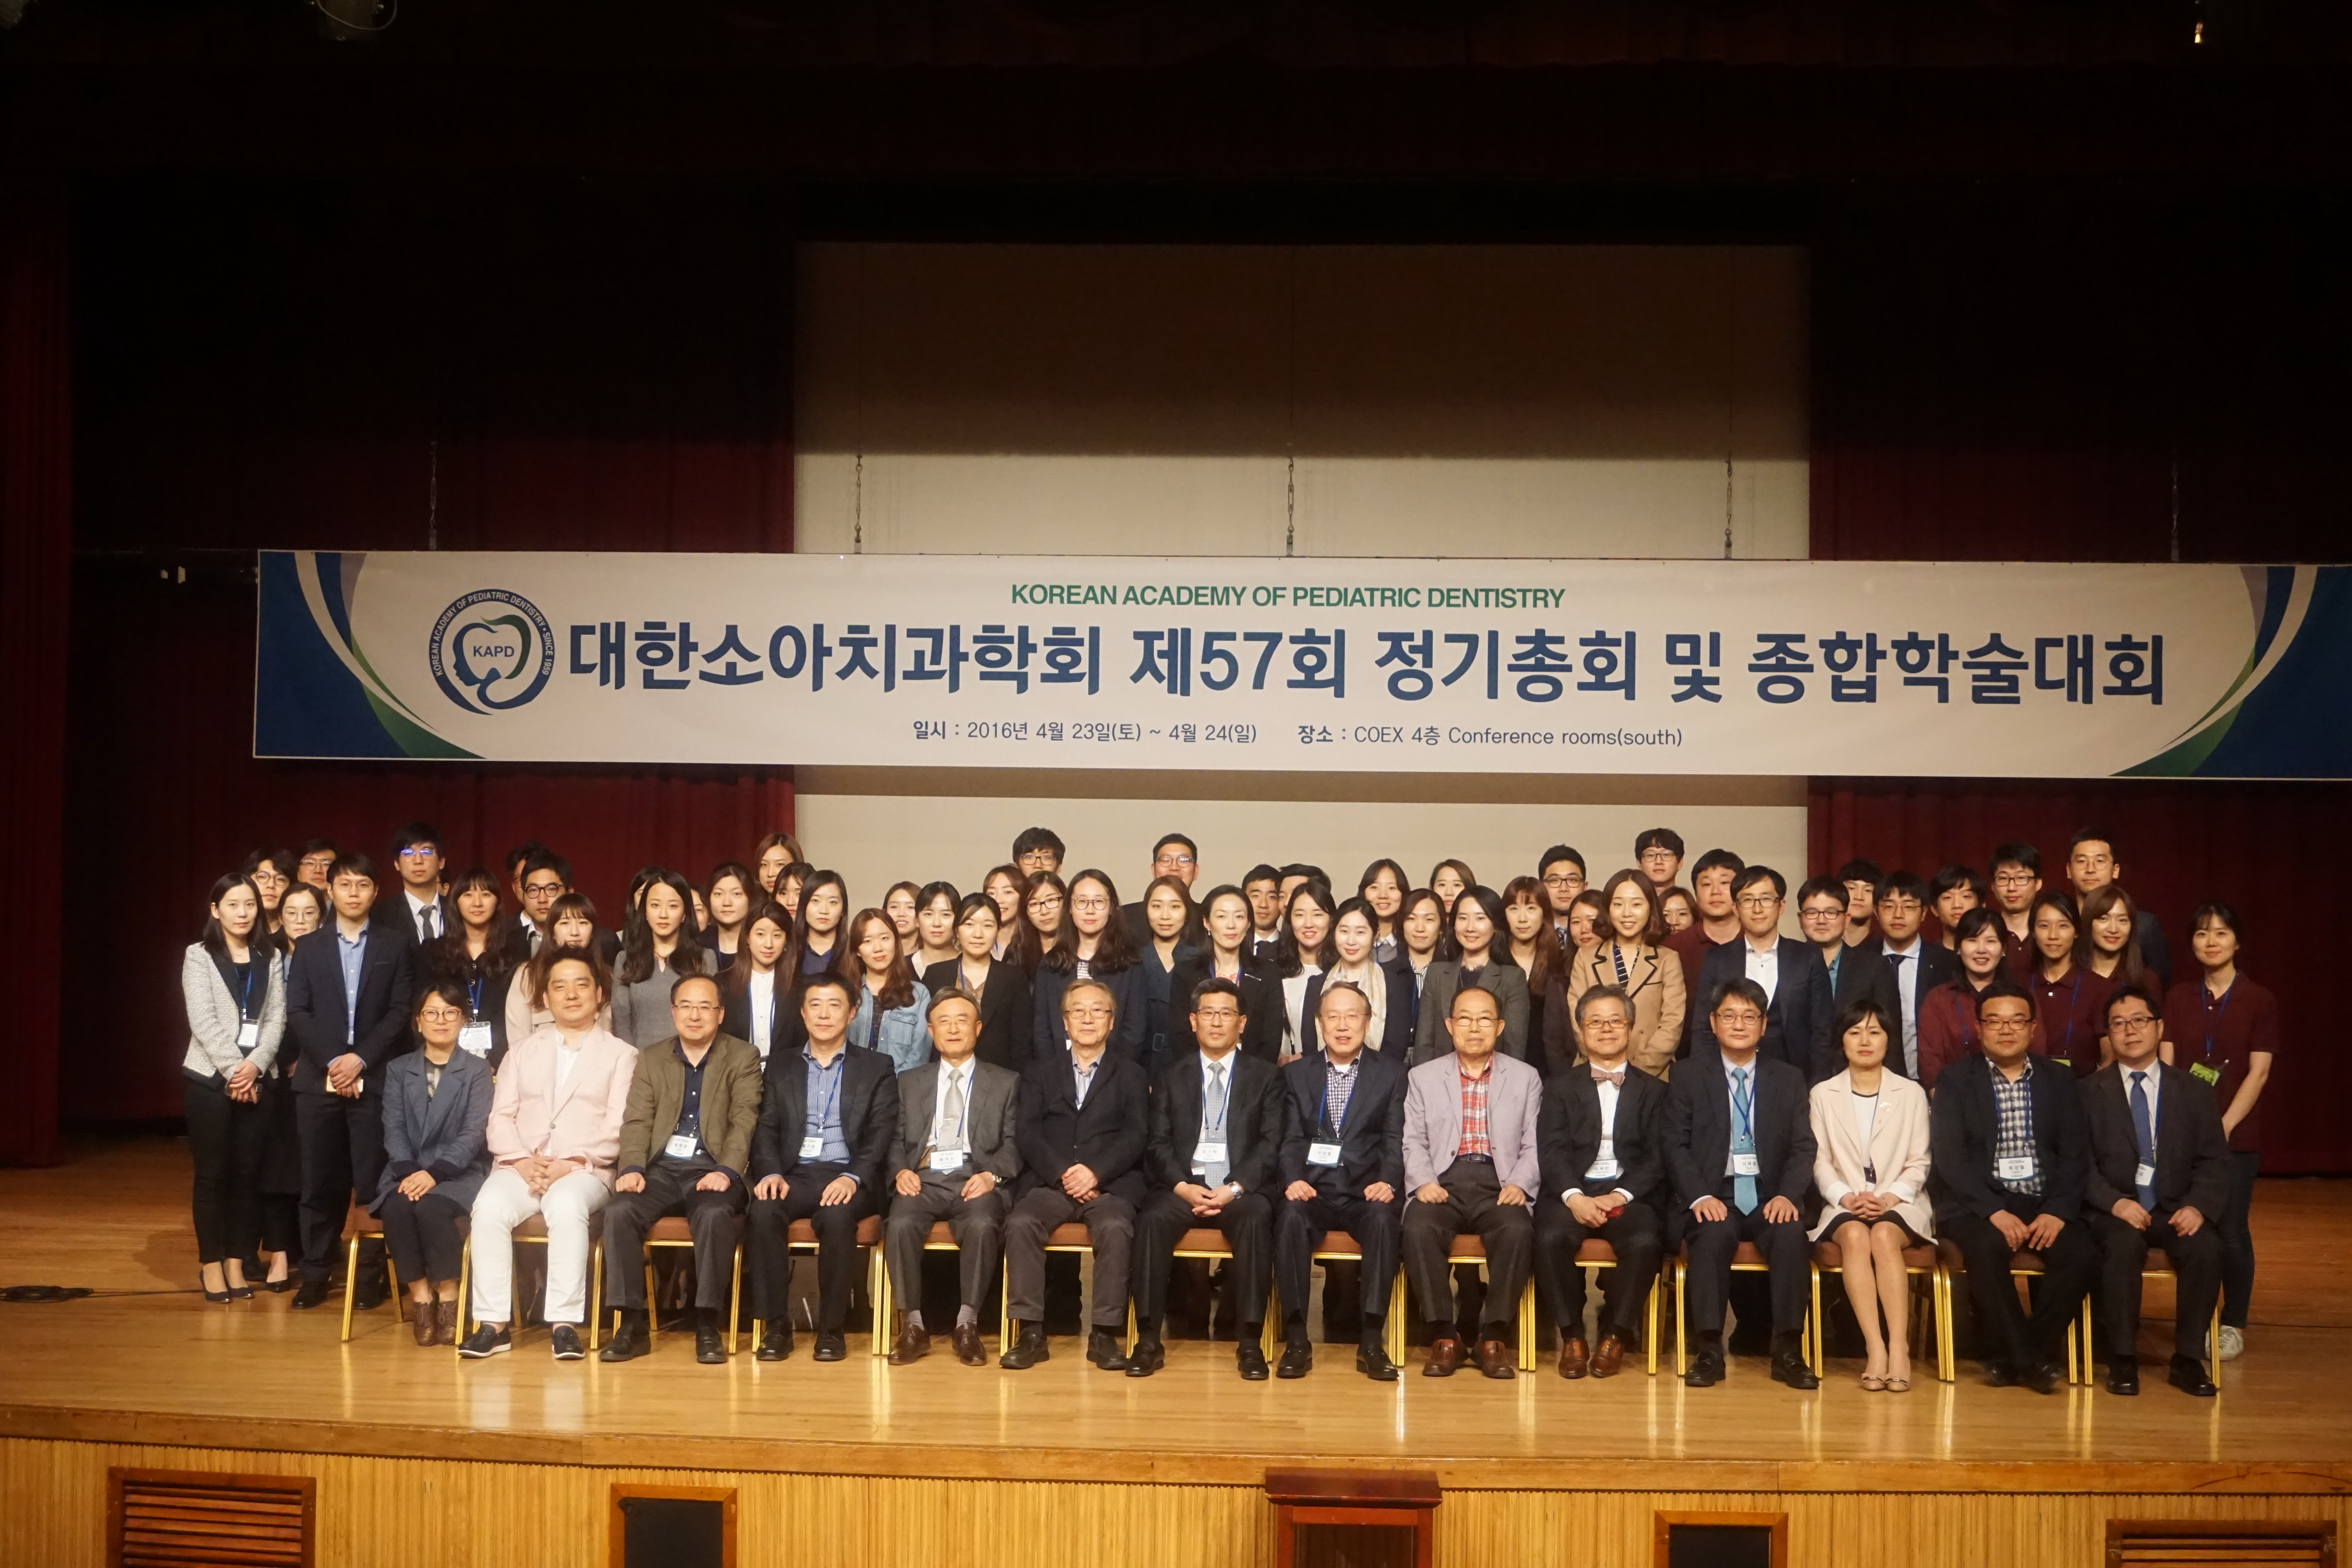 The 57th Scientific Meeting and Annual Congress of KAPD